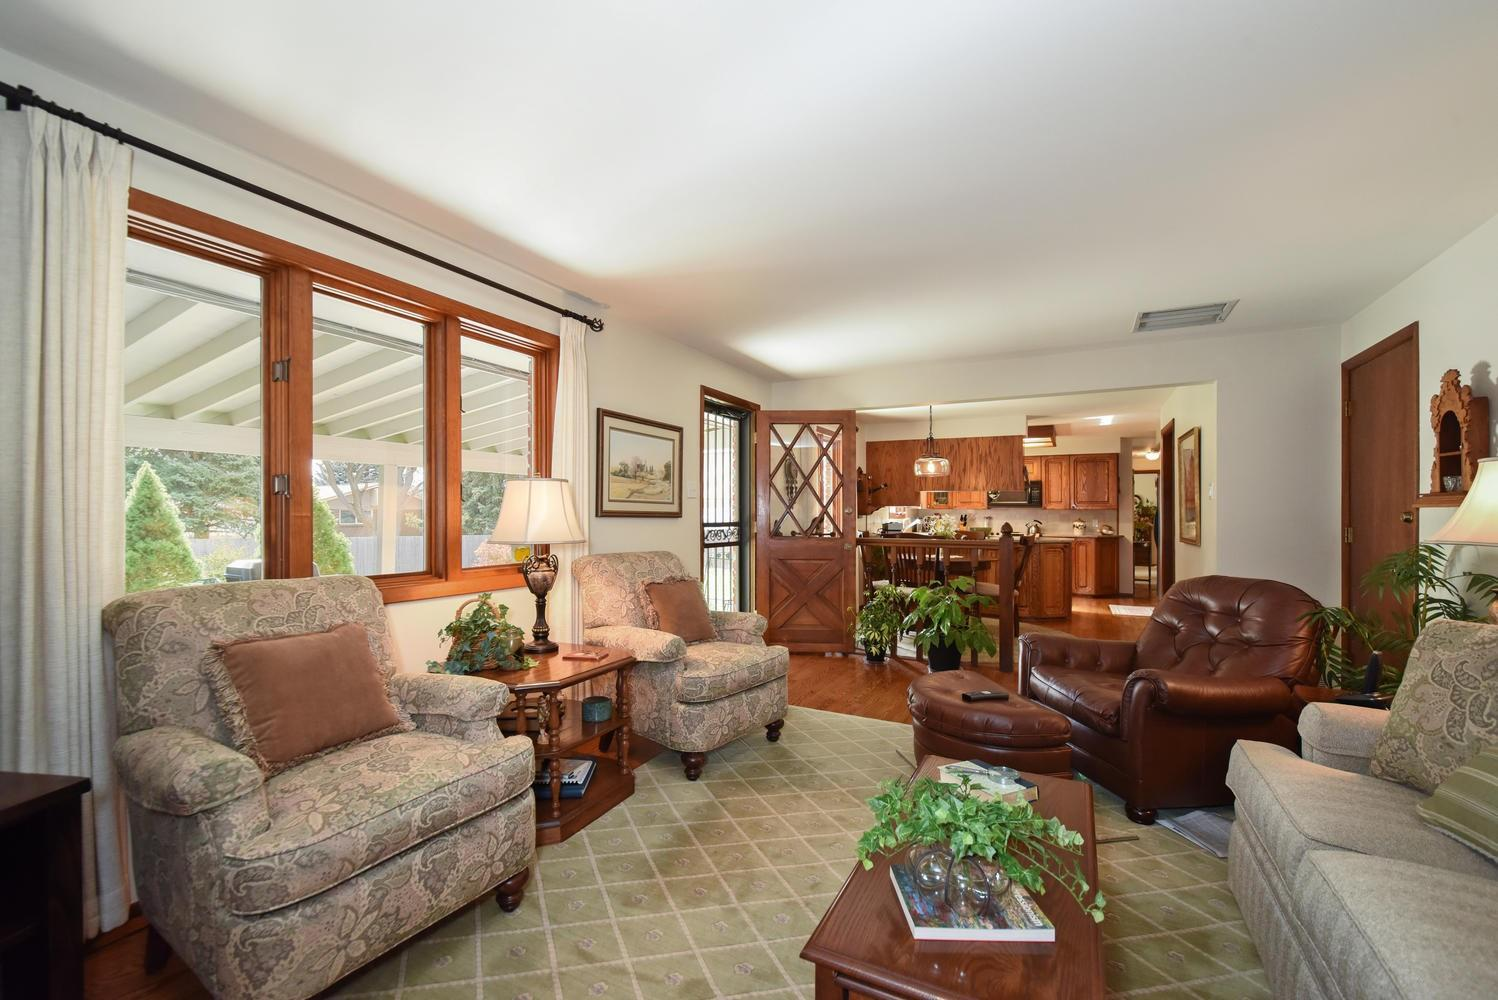 10482 W 75th Ave - Eckland - Sellers5.jpeg